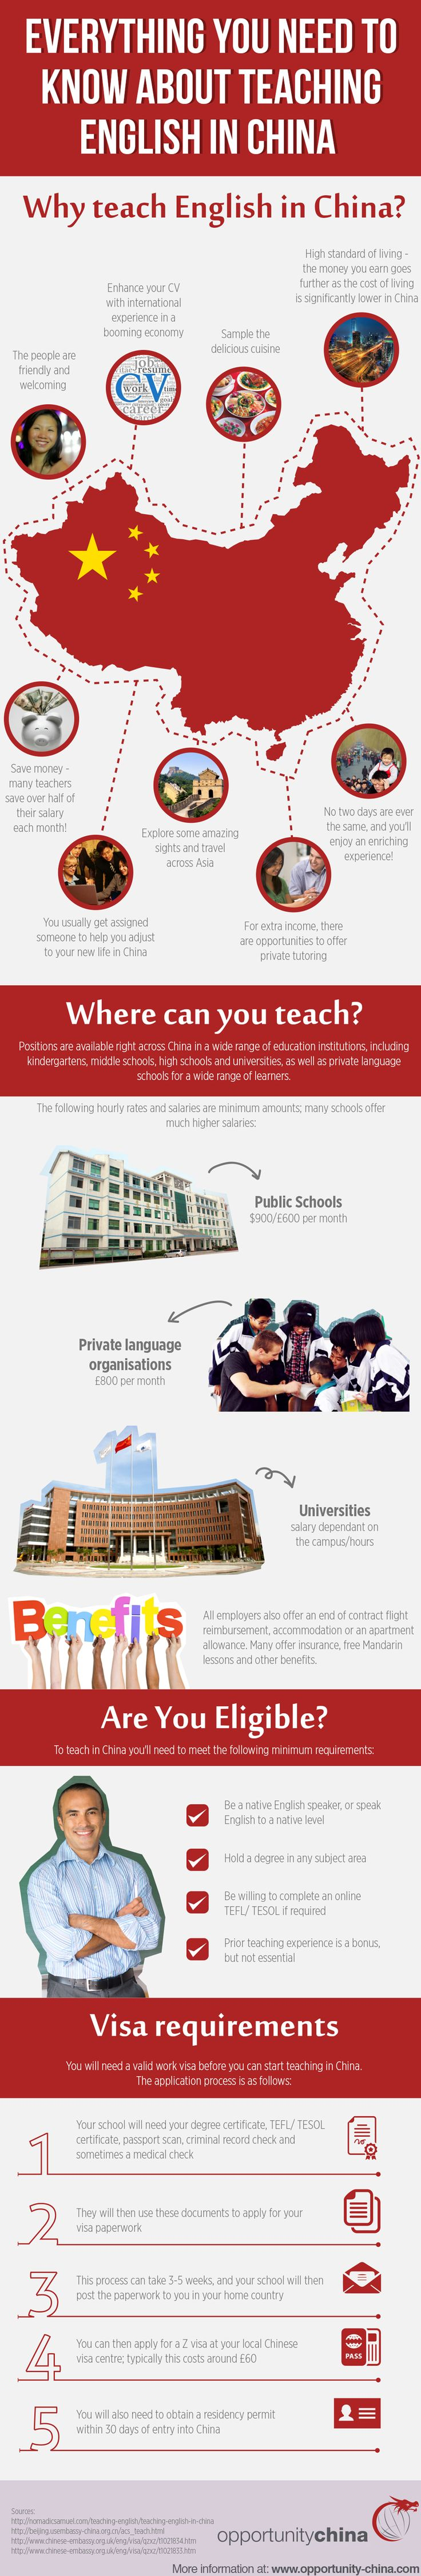 Clearly presented; everything you could possibly want to know about teaching English abroad in China.